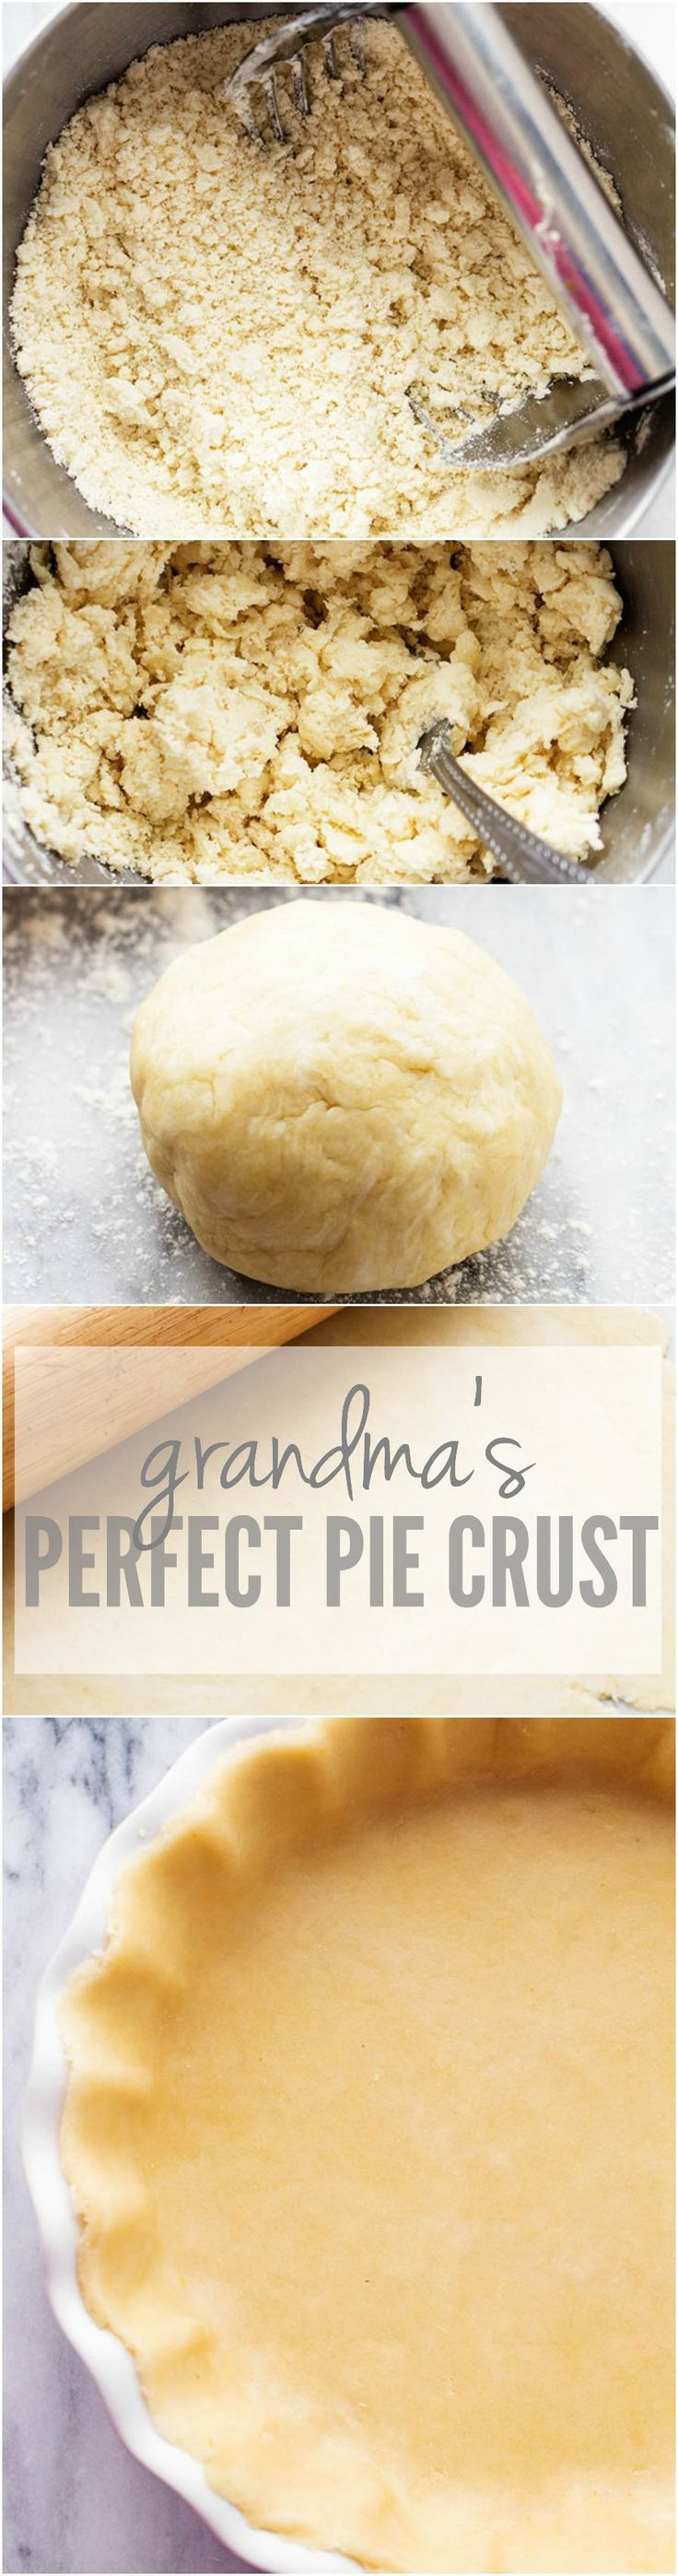 The BEST and only pie crust recipe that you will need from my grandma. Step by step instructions included!